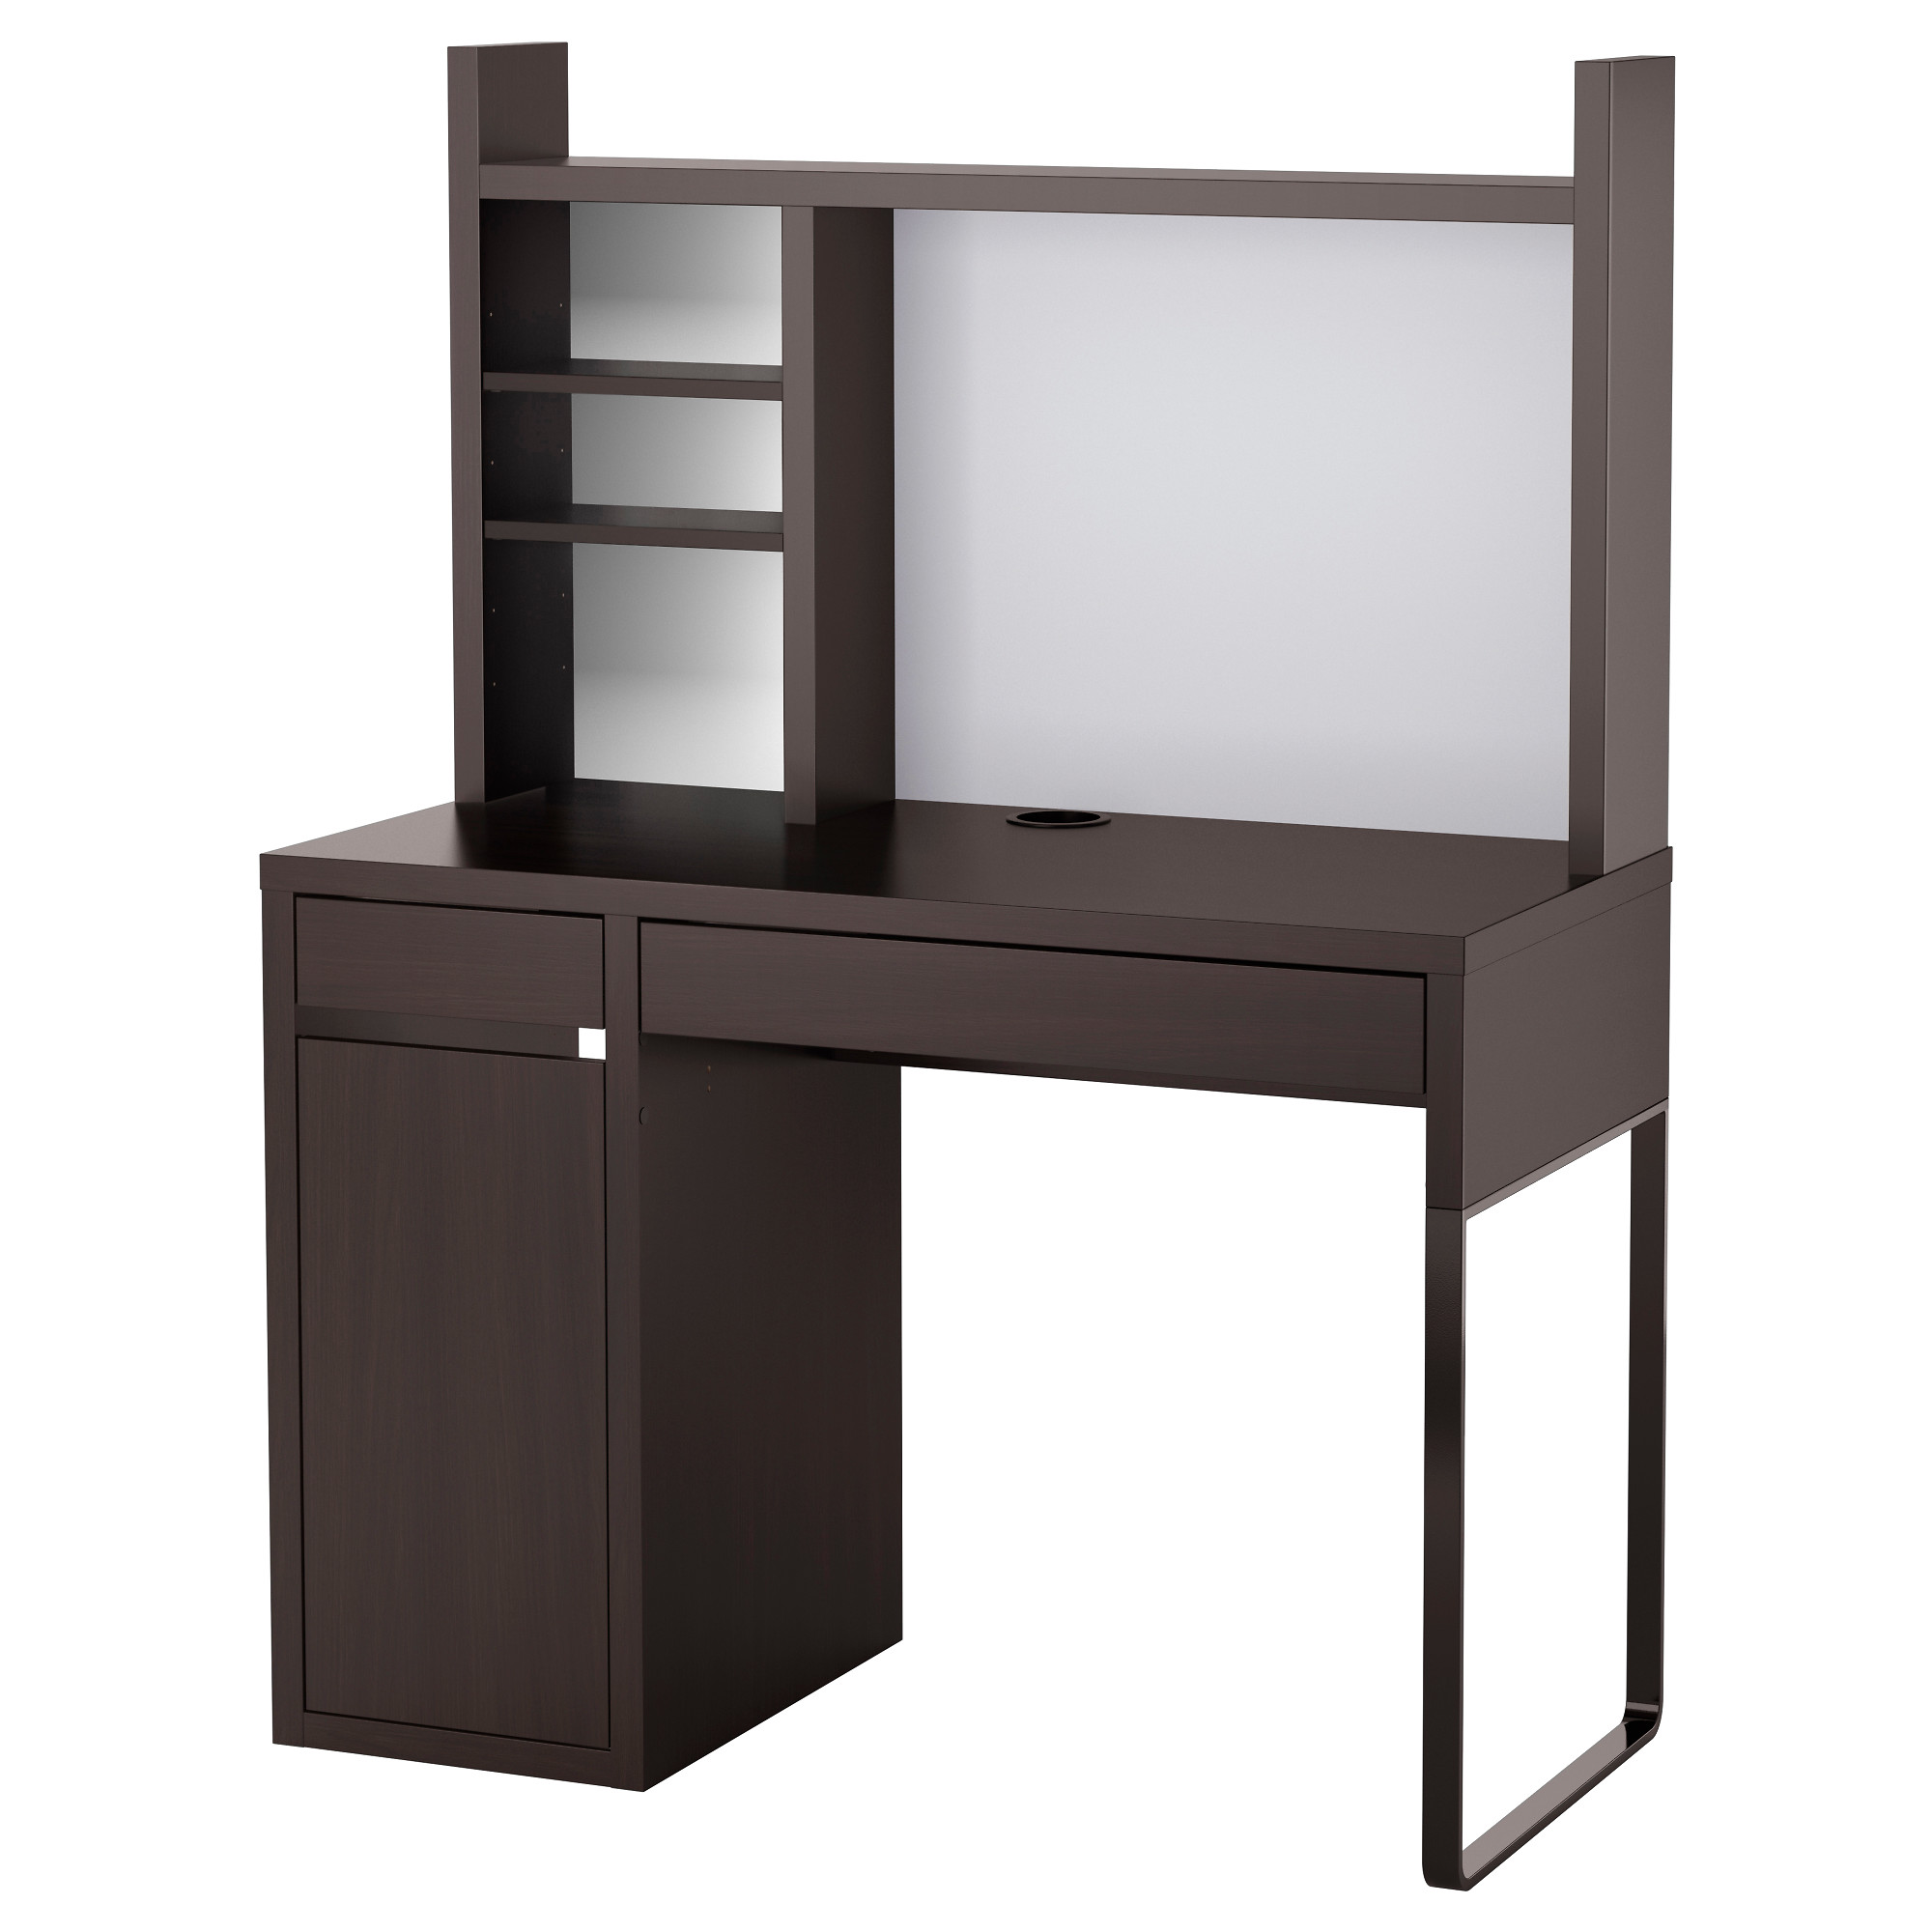 white lamp office furniture flooring hutch computer wood corner lowes view for ikea charming tv with appealing sauder on stand desk harbor and design